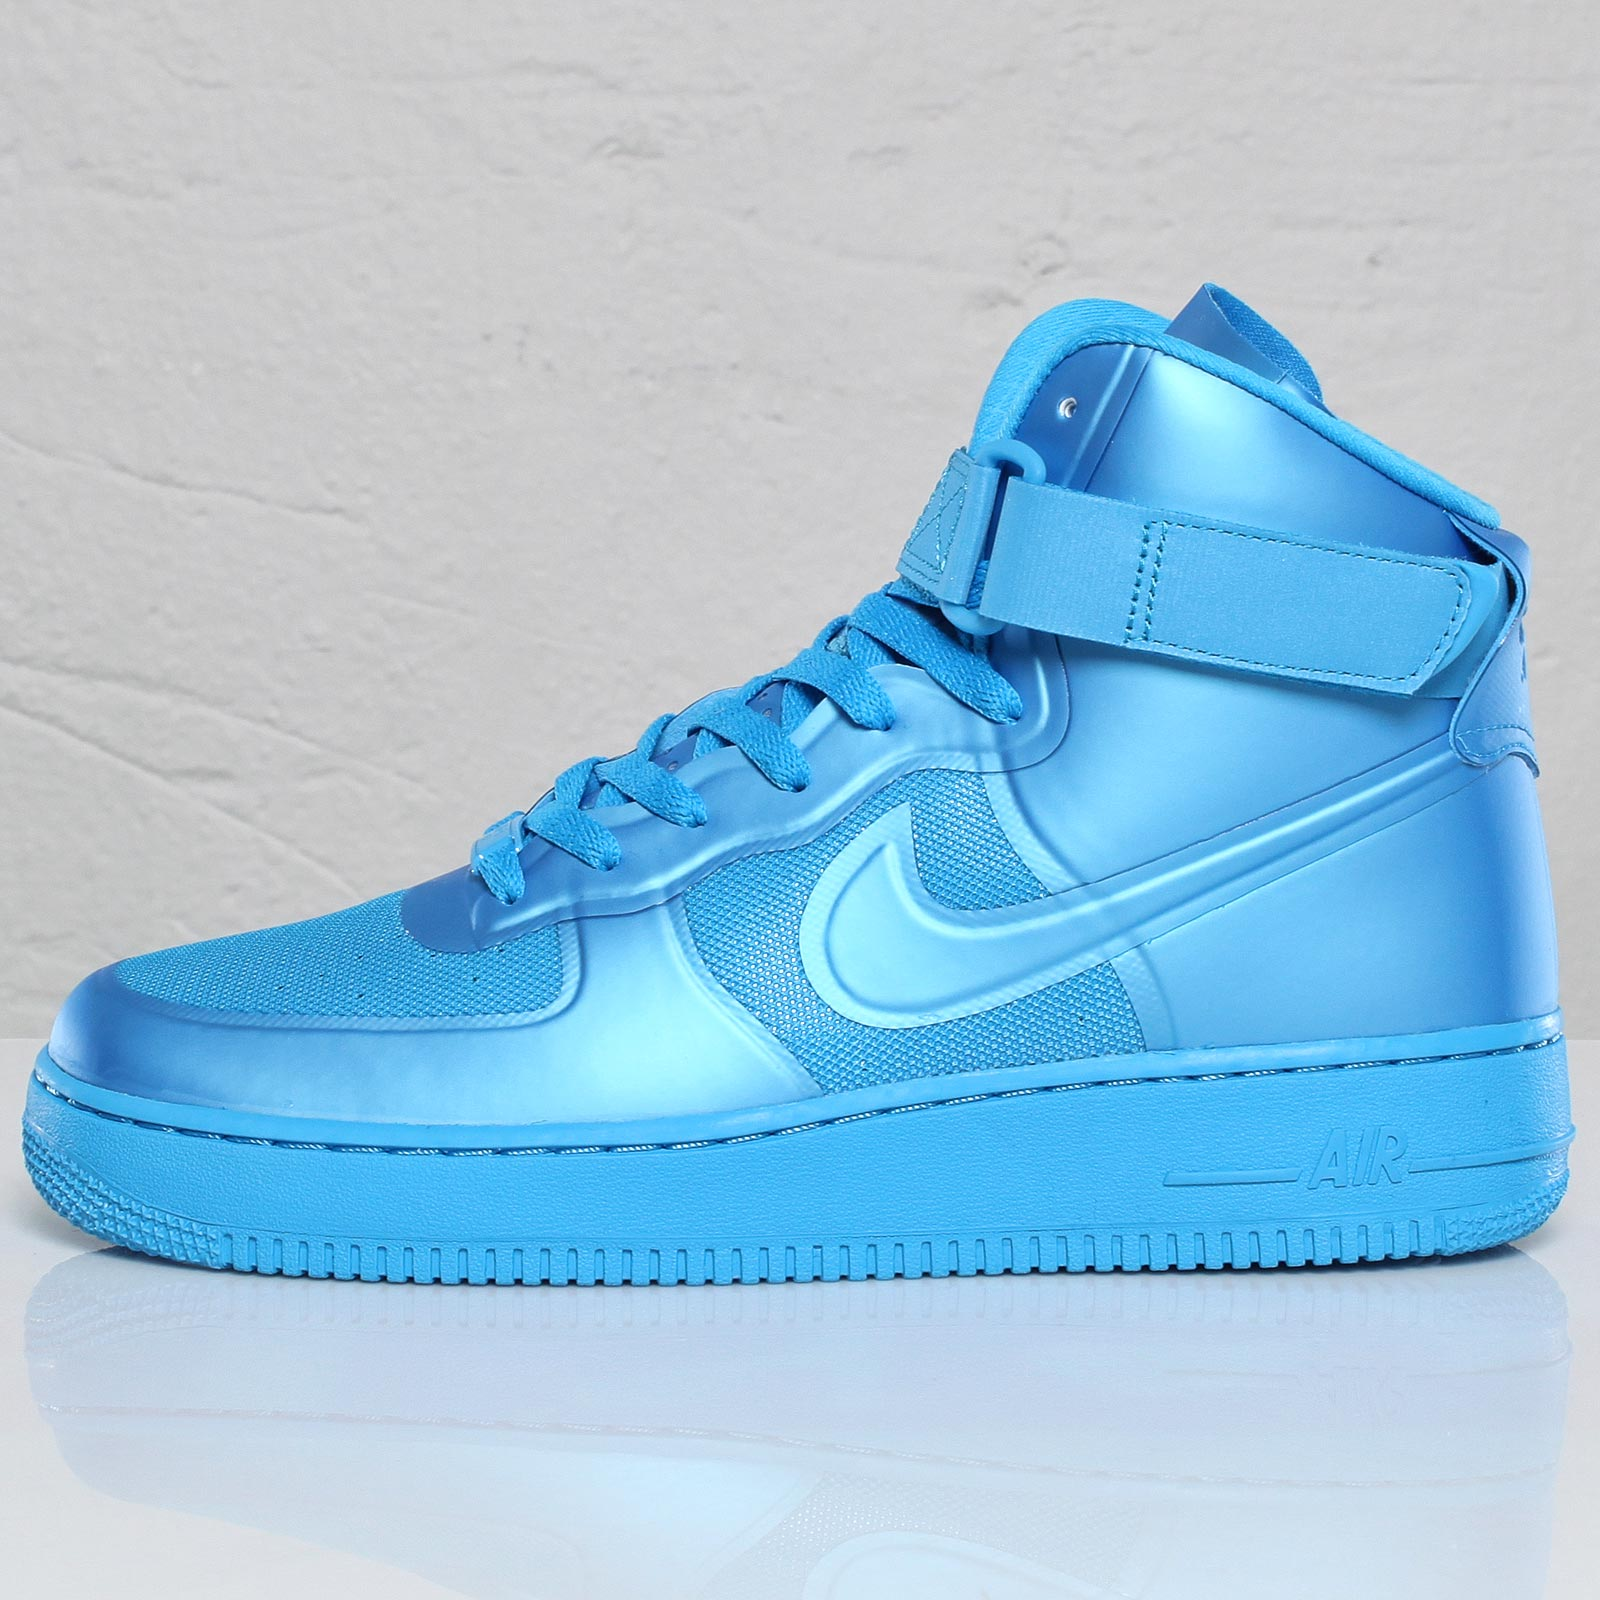 the latest a791c 8ae2b Nike Air Force 1 Hi Hyp Prm - 101867 - Sneakersnstuff   sneakers    streetwear online since 1999